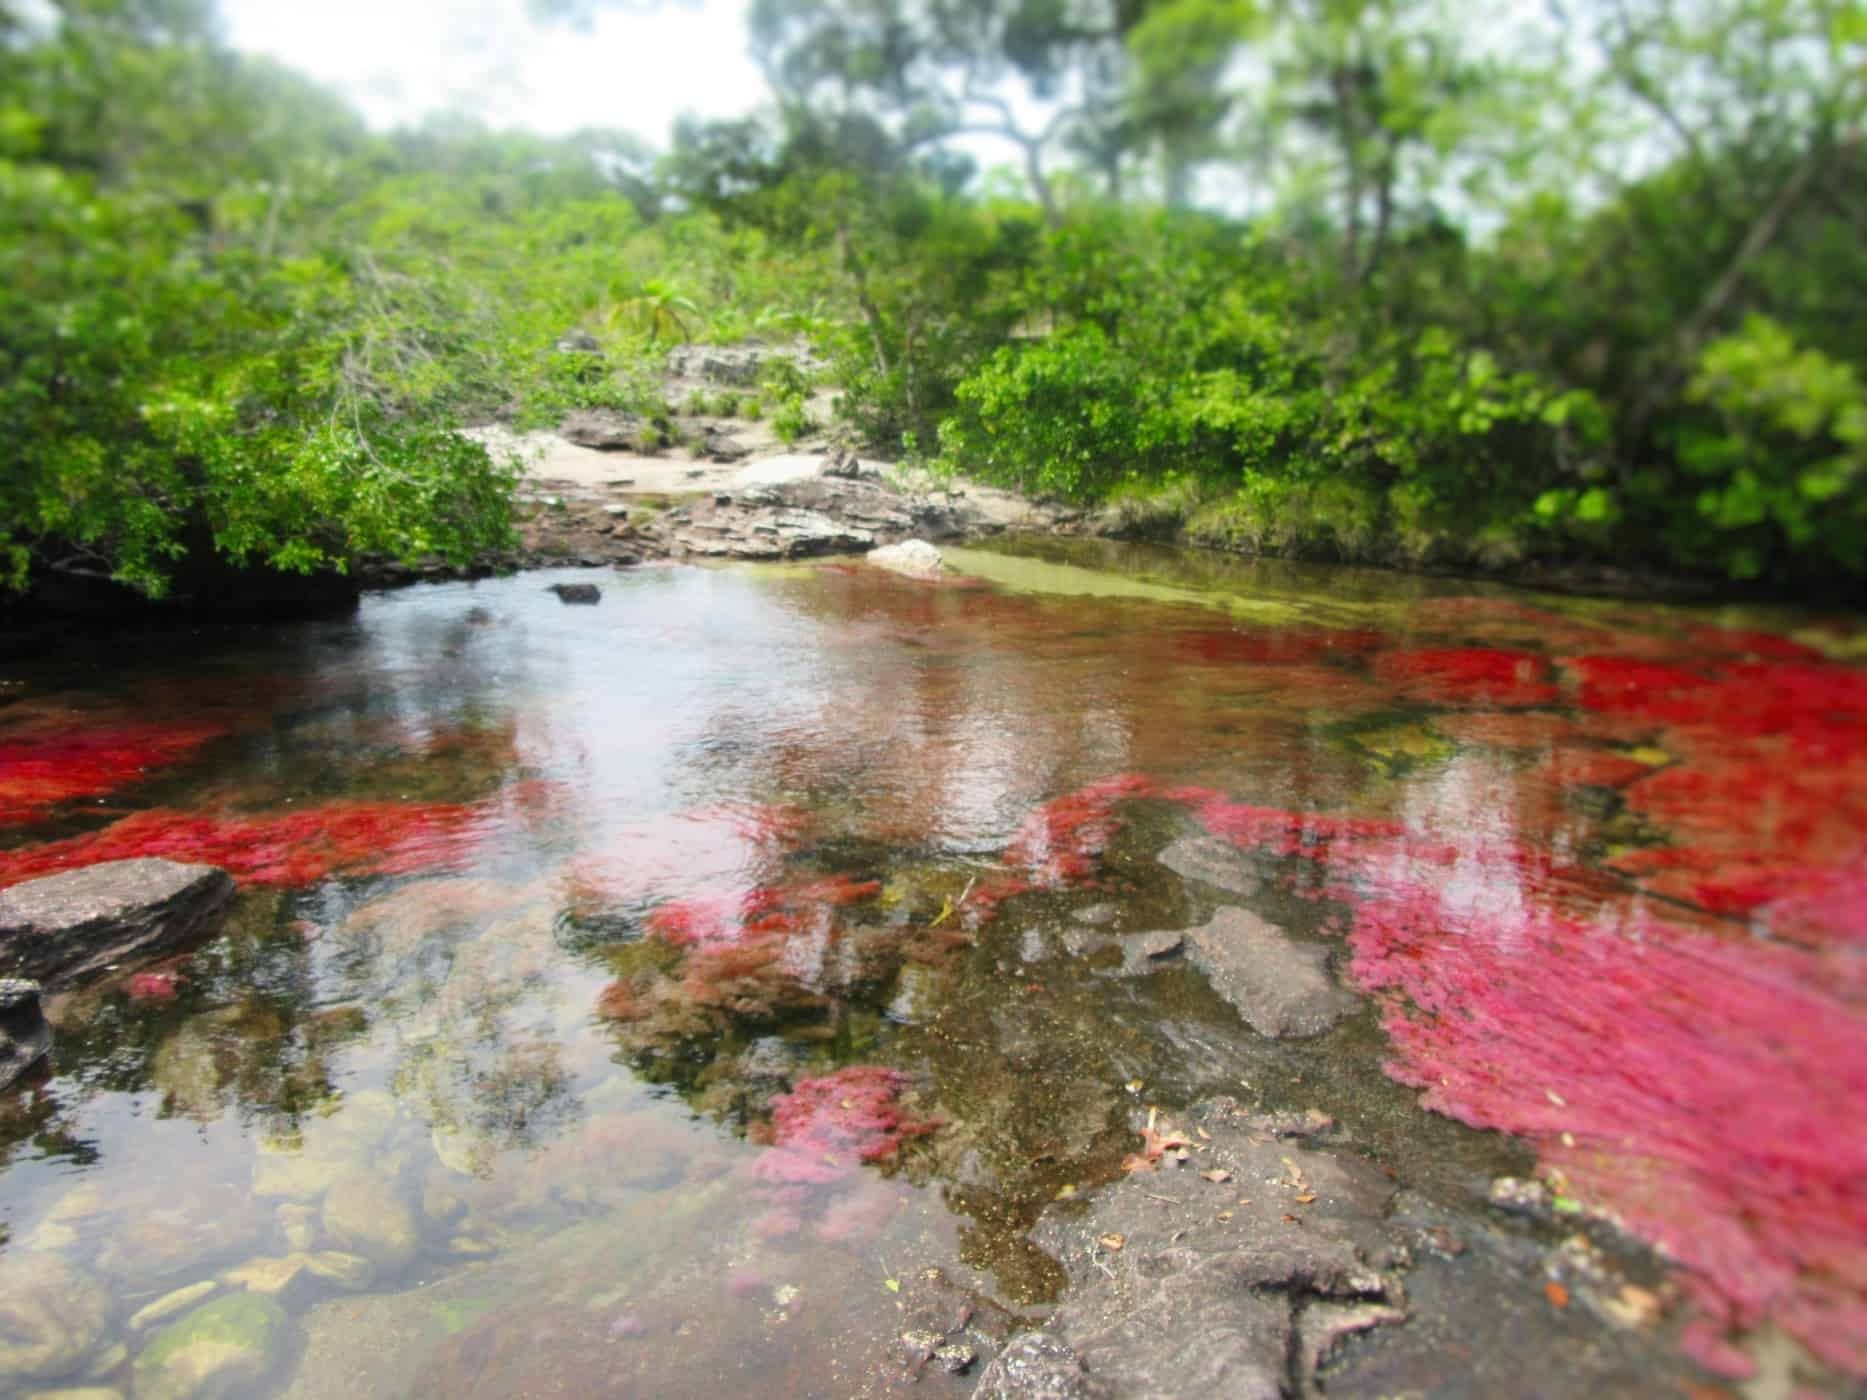 The most beautiful river in the world! Caño Cristales River, Colombia.